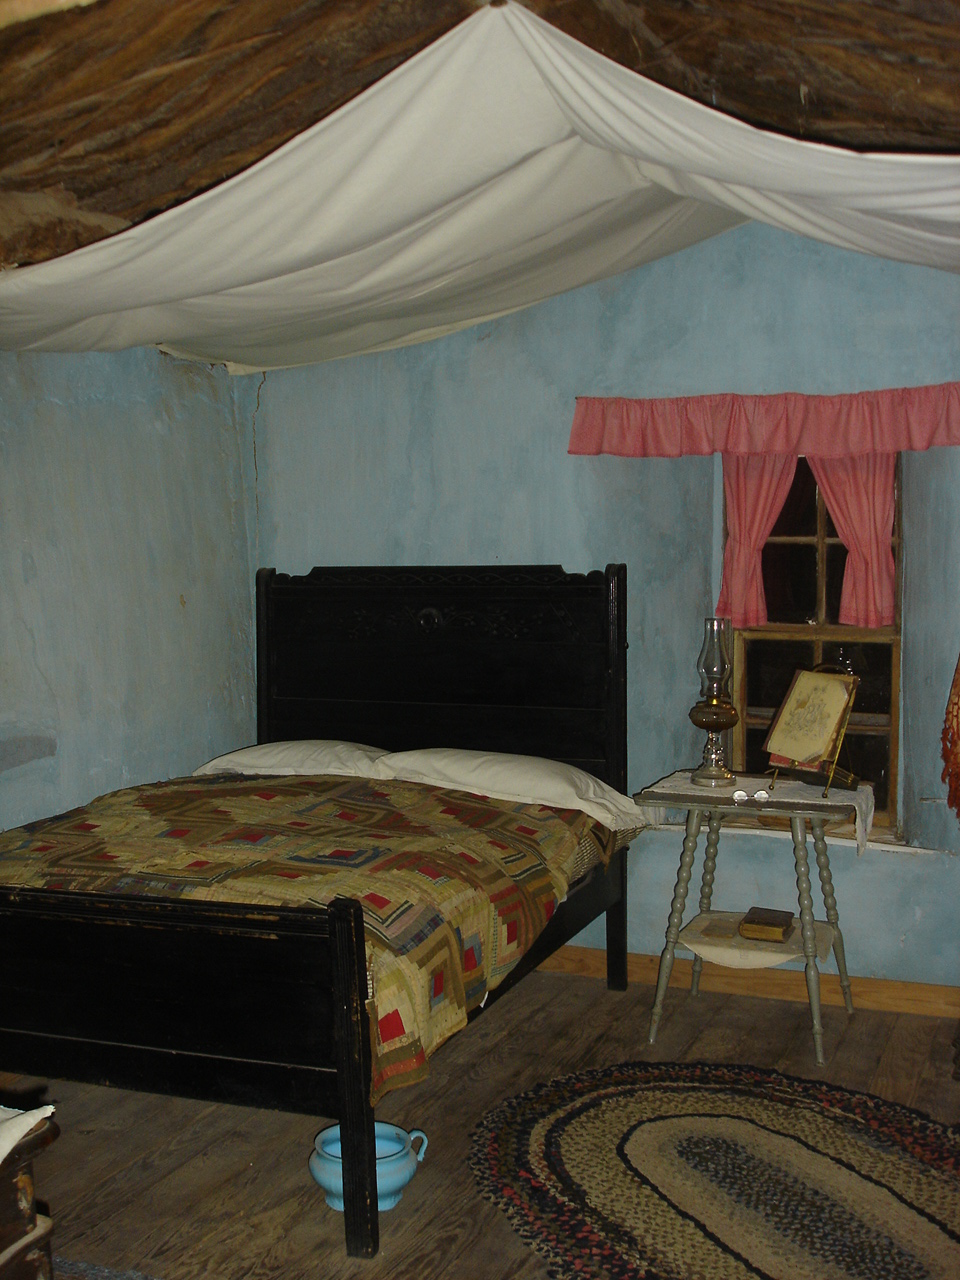 Sod House Bed With Log Cabin Quilt And Muslin Sheets